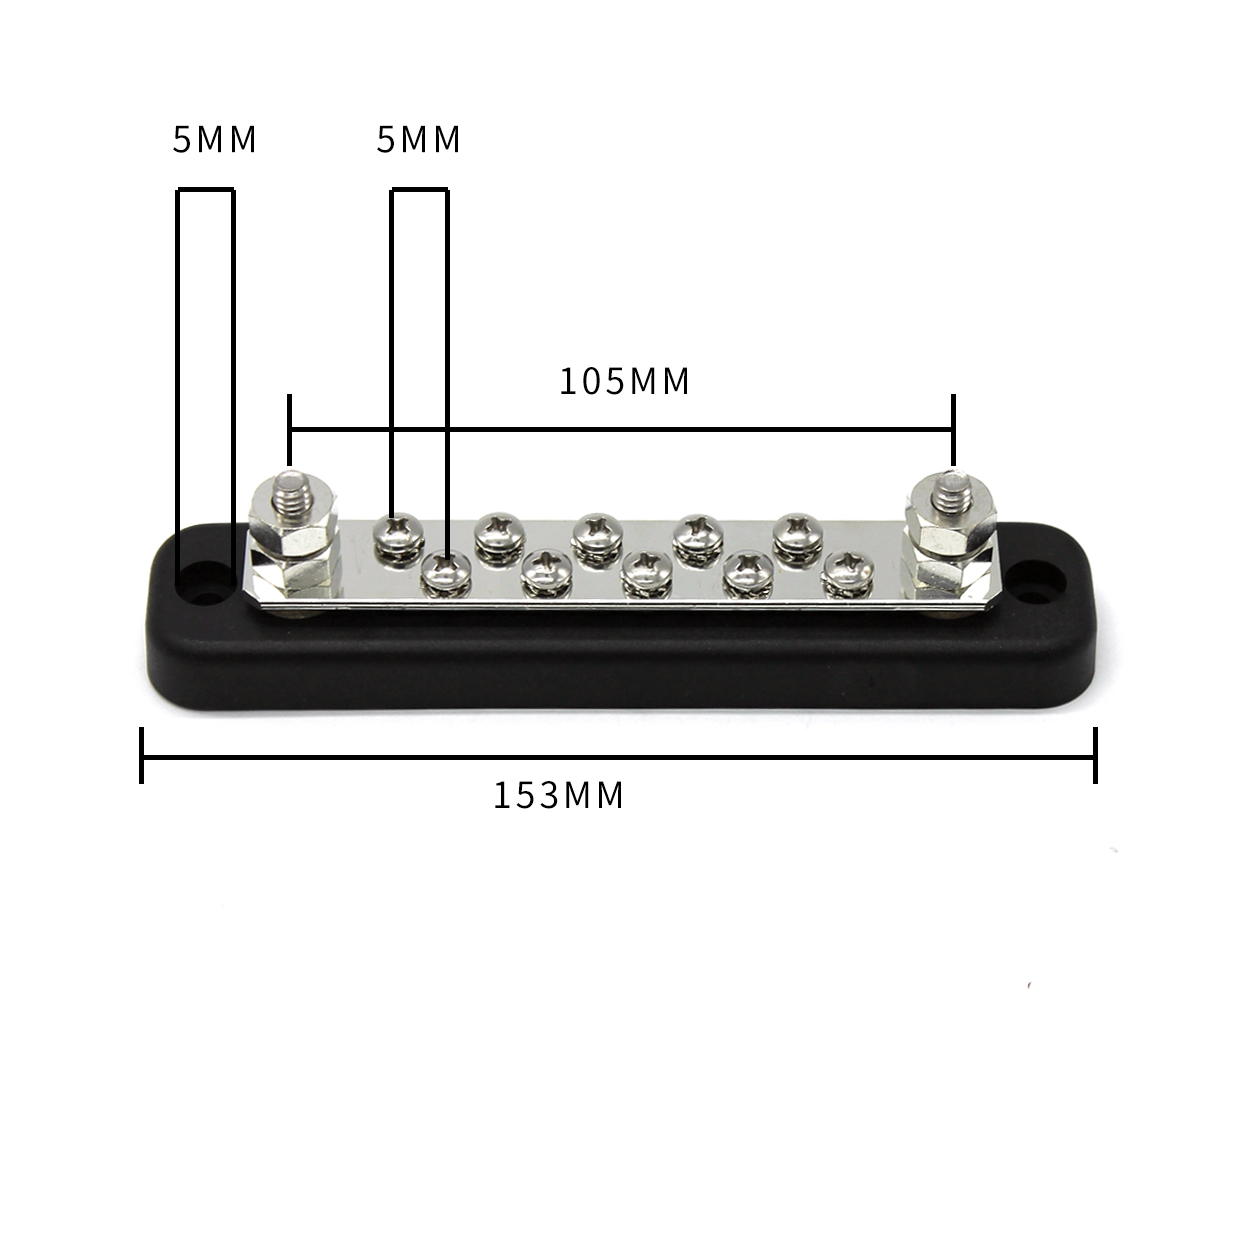 5 Way Terminal Bus Bar Power Distribution Block DC//AC Voltage For Boat